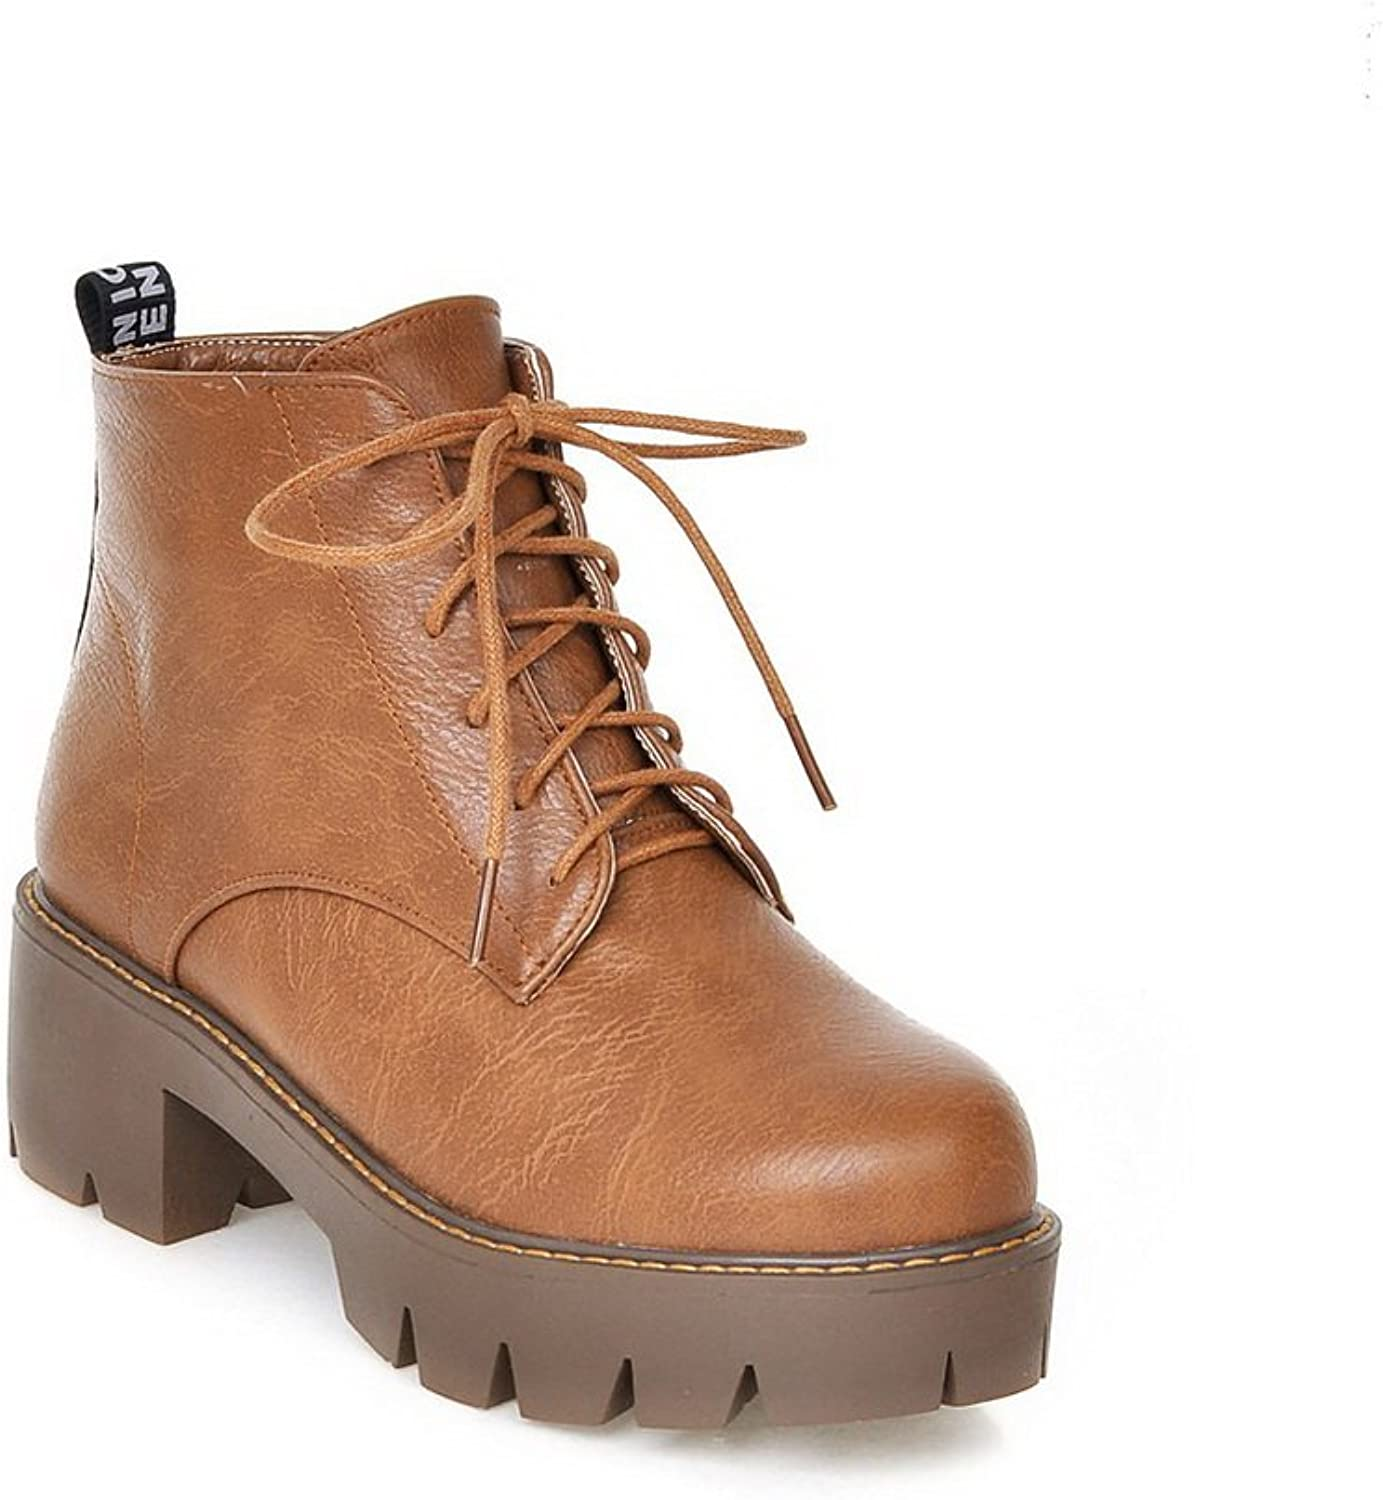 AdeeSu Girls Lace-Up Solid Outdoor Imitated Leather Boots